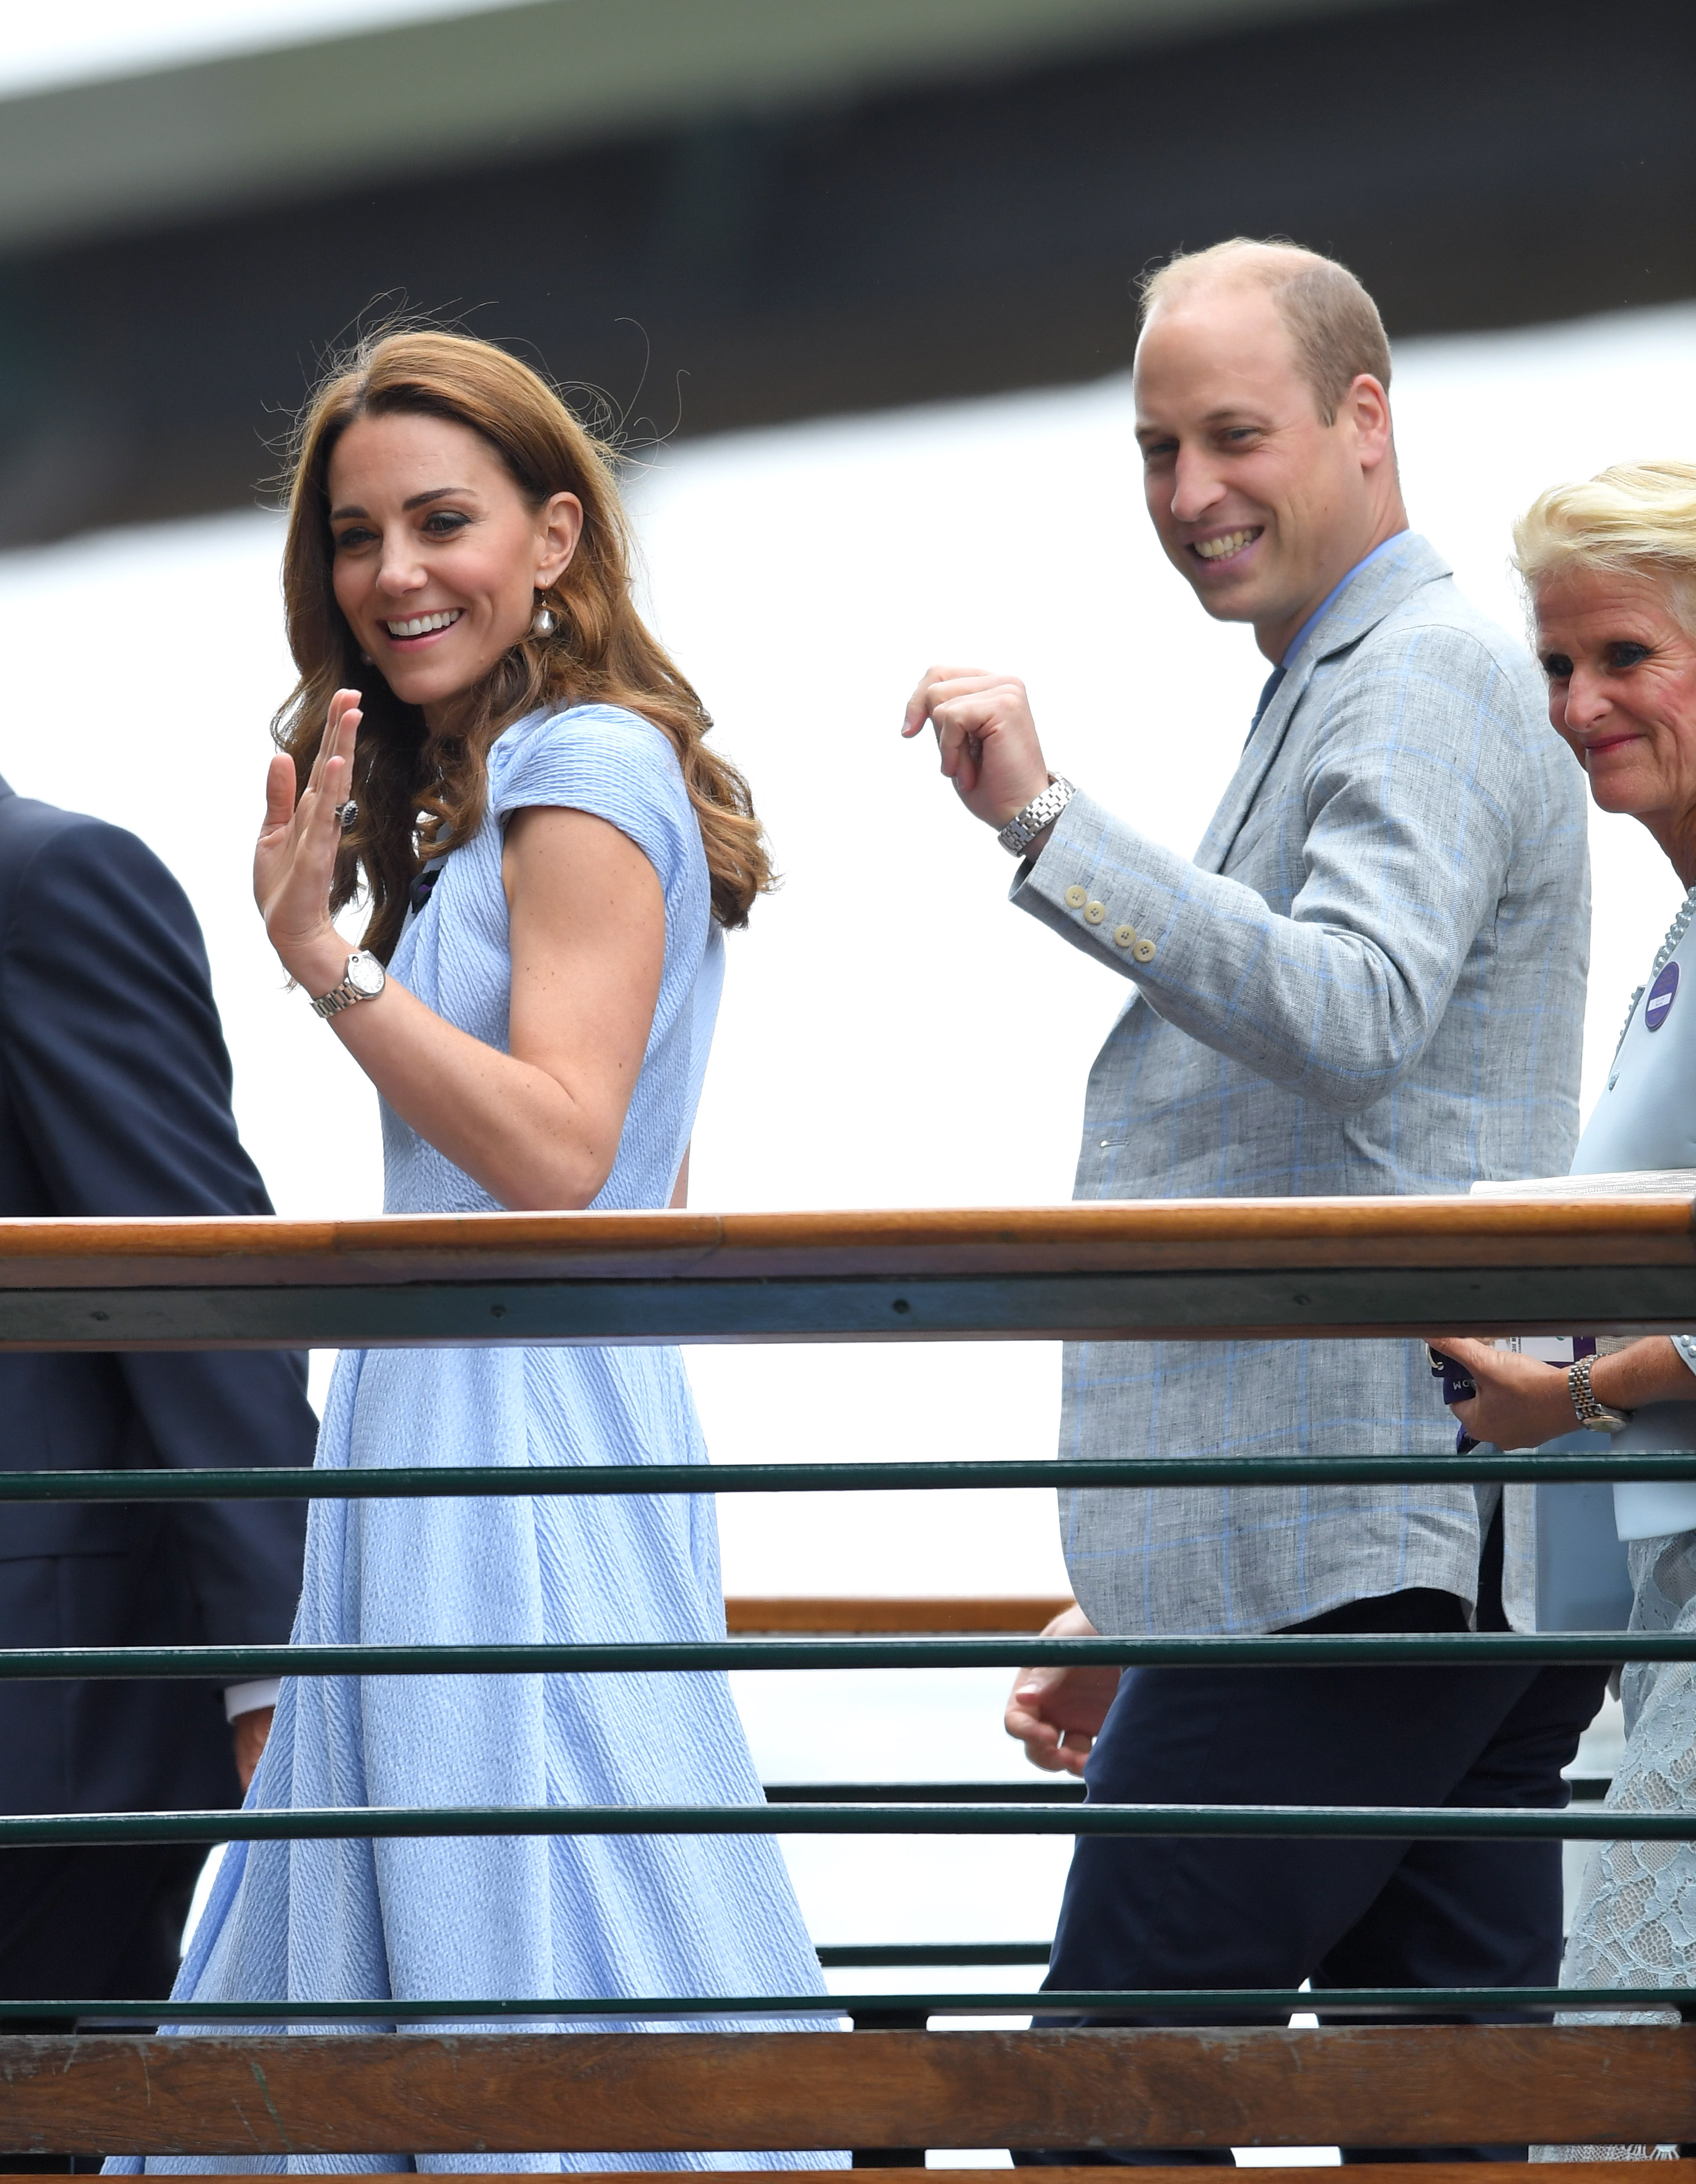 LONDON, ENGLAND - JULY 14: Catherine, Duchess of Cambridge and Prince William, Duke of Cambridge attend day thirteen of the Wimbledon Tennis Championships at All England Lawn Tennis and Croquet Club on July 14, 2019 in London, England. (Photo by Karwai Tang/Getty Images)